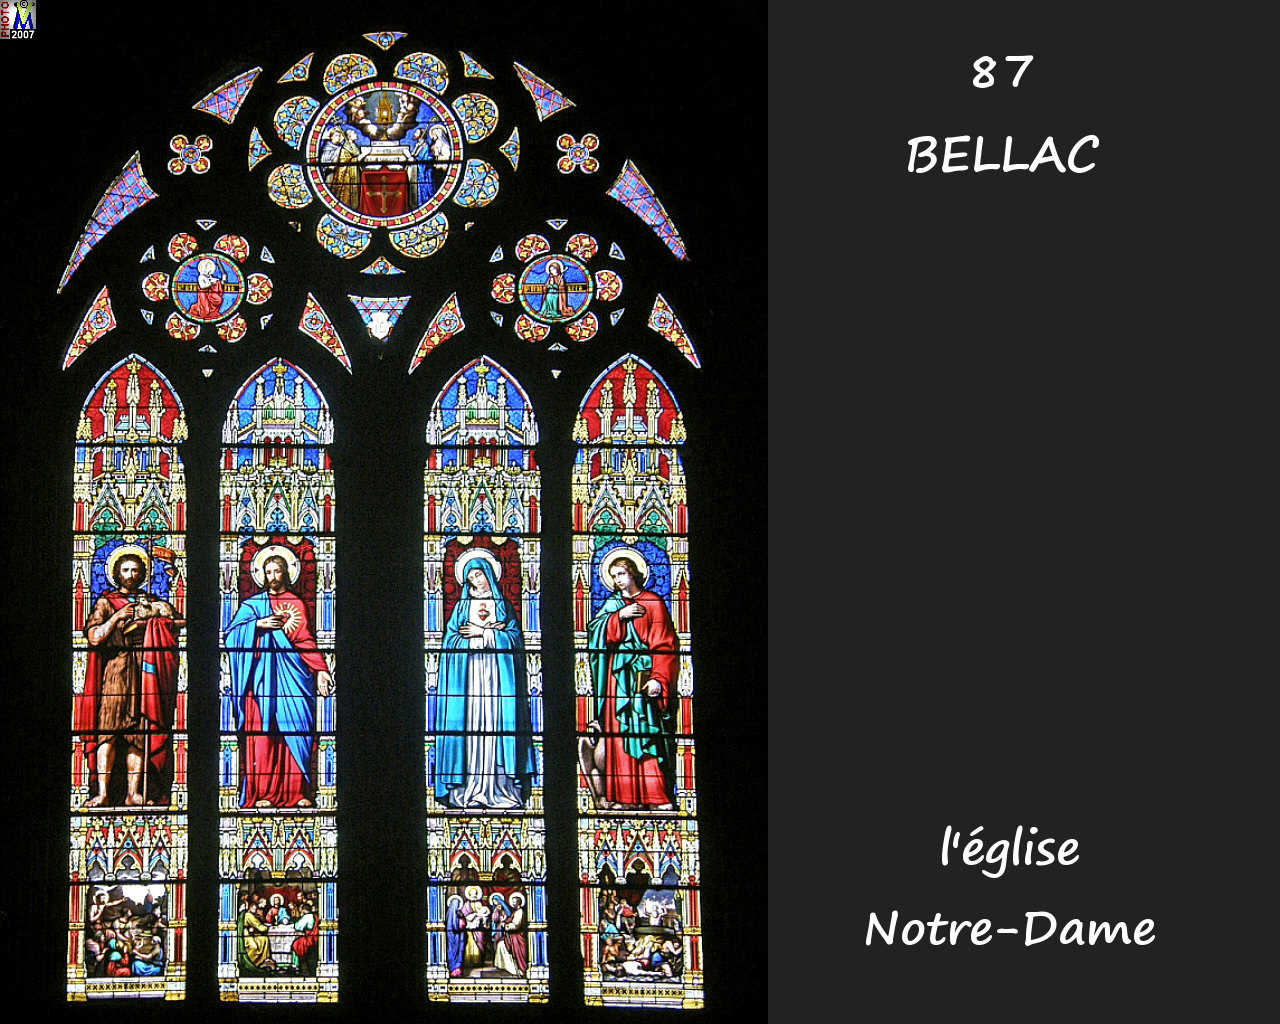 87BELLAC_eglise_210.jpg